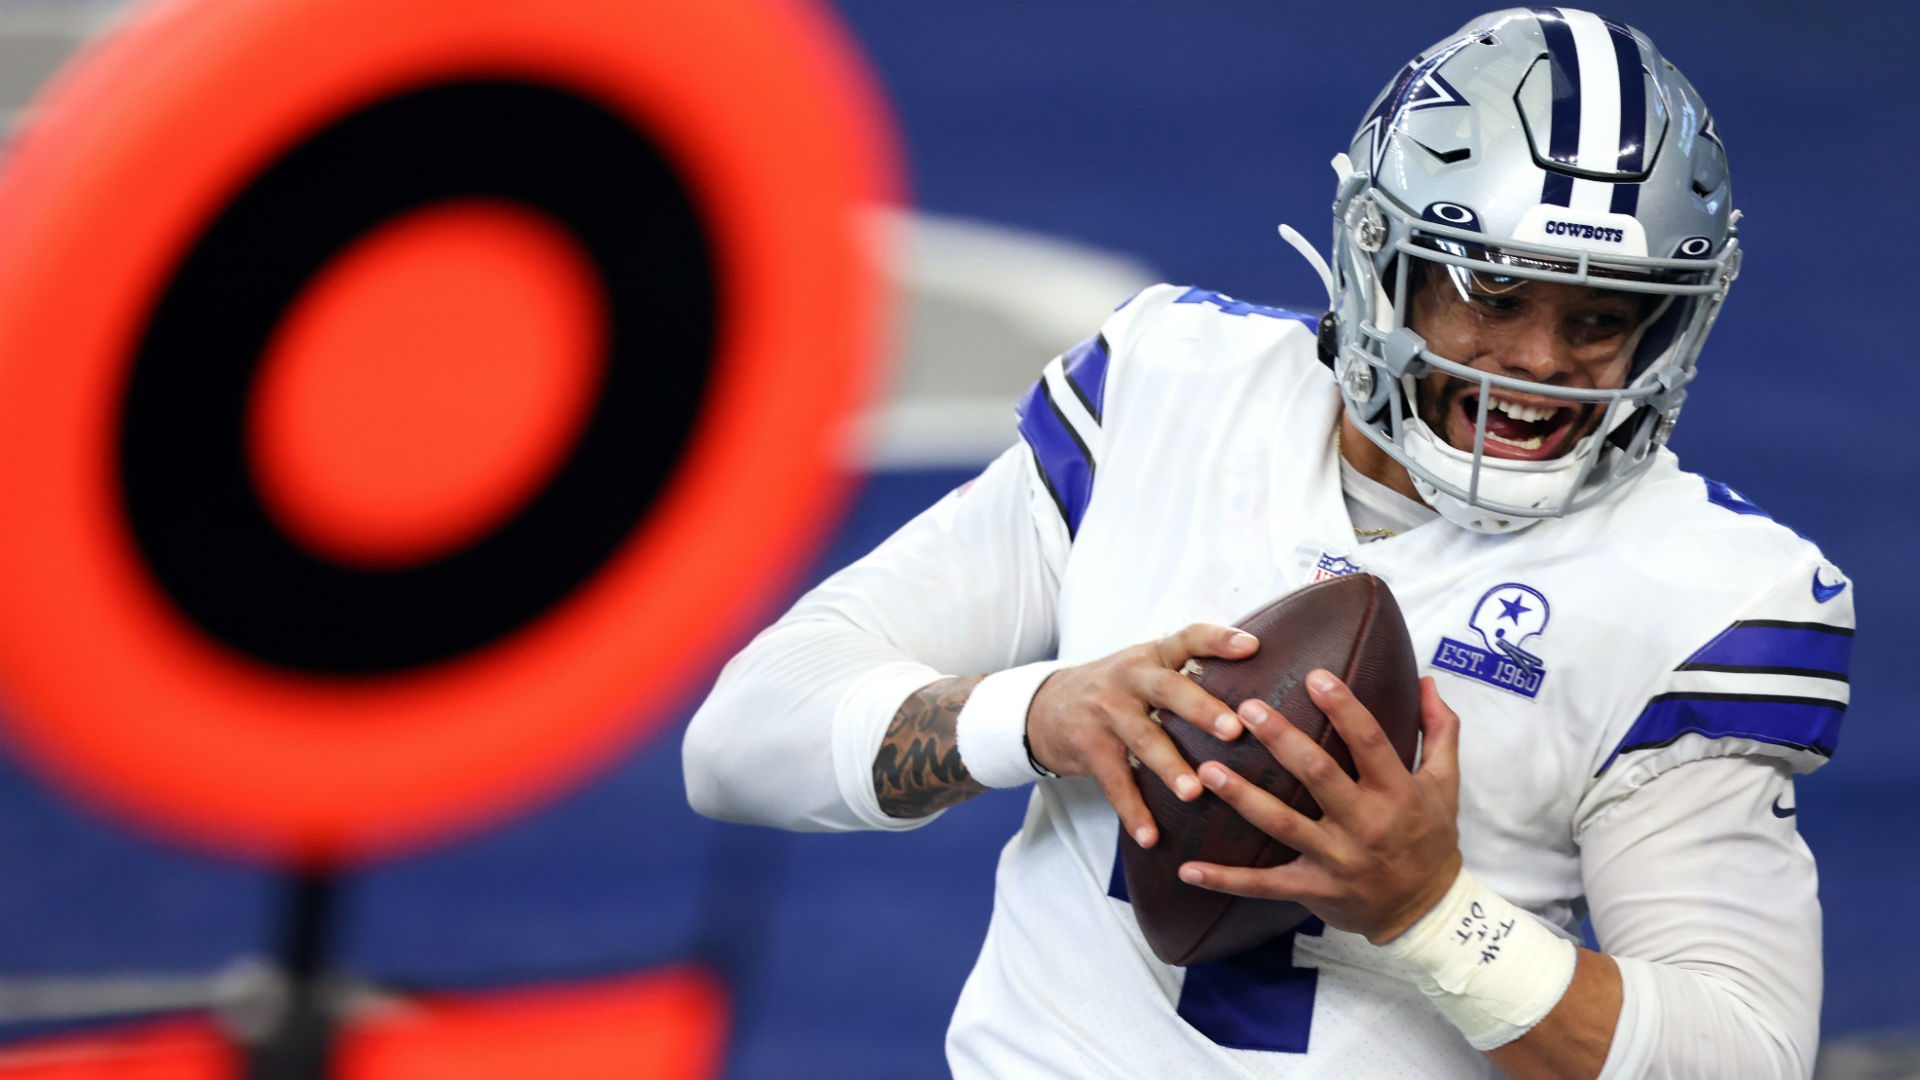 Cowboys' Dak Prescott caught a touchdown on a Philly Special lookalike